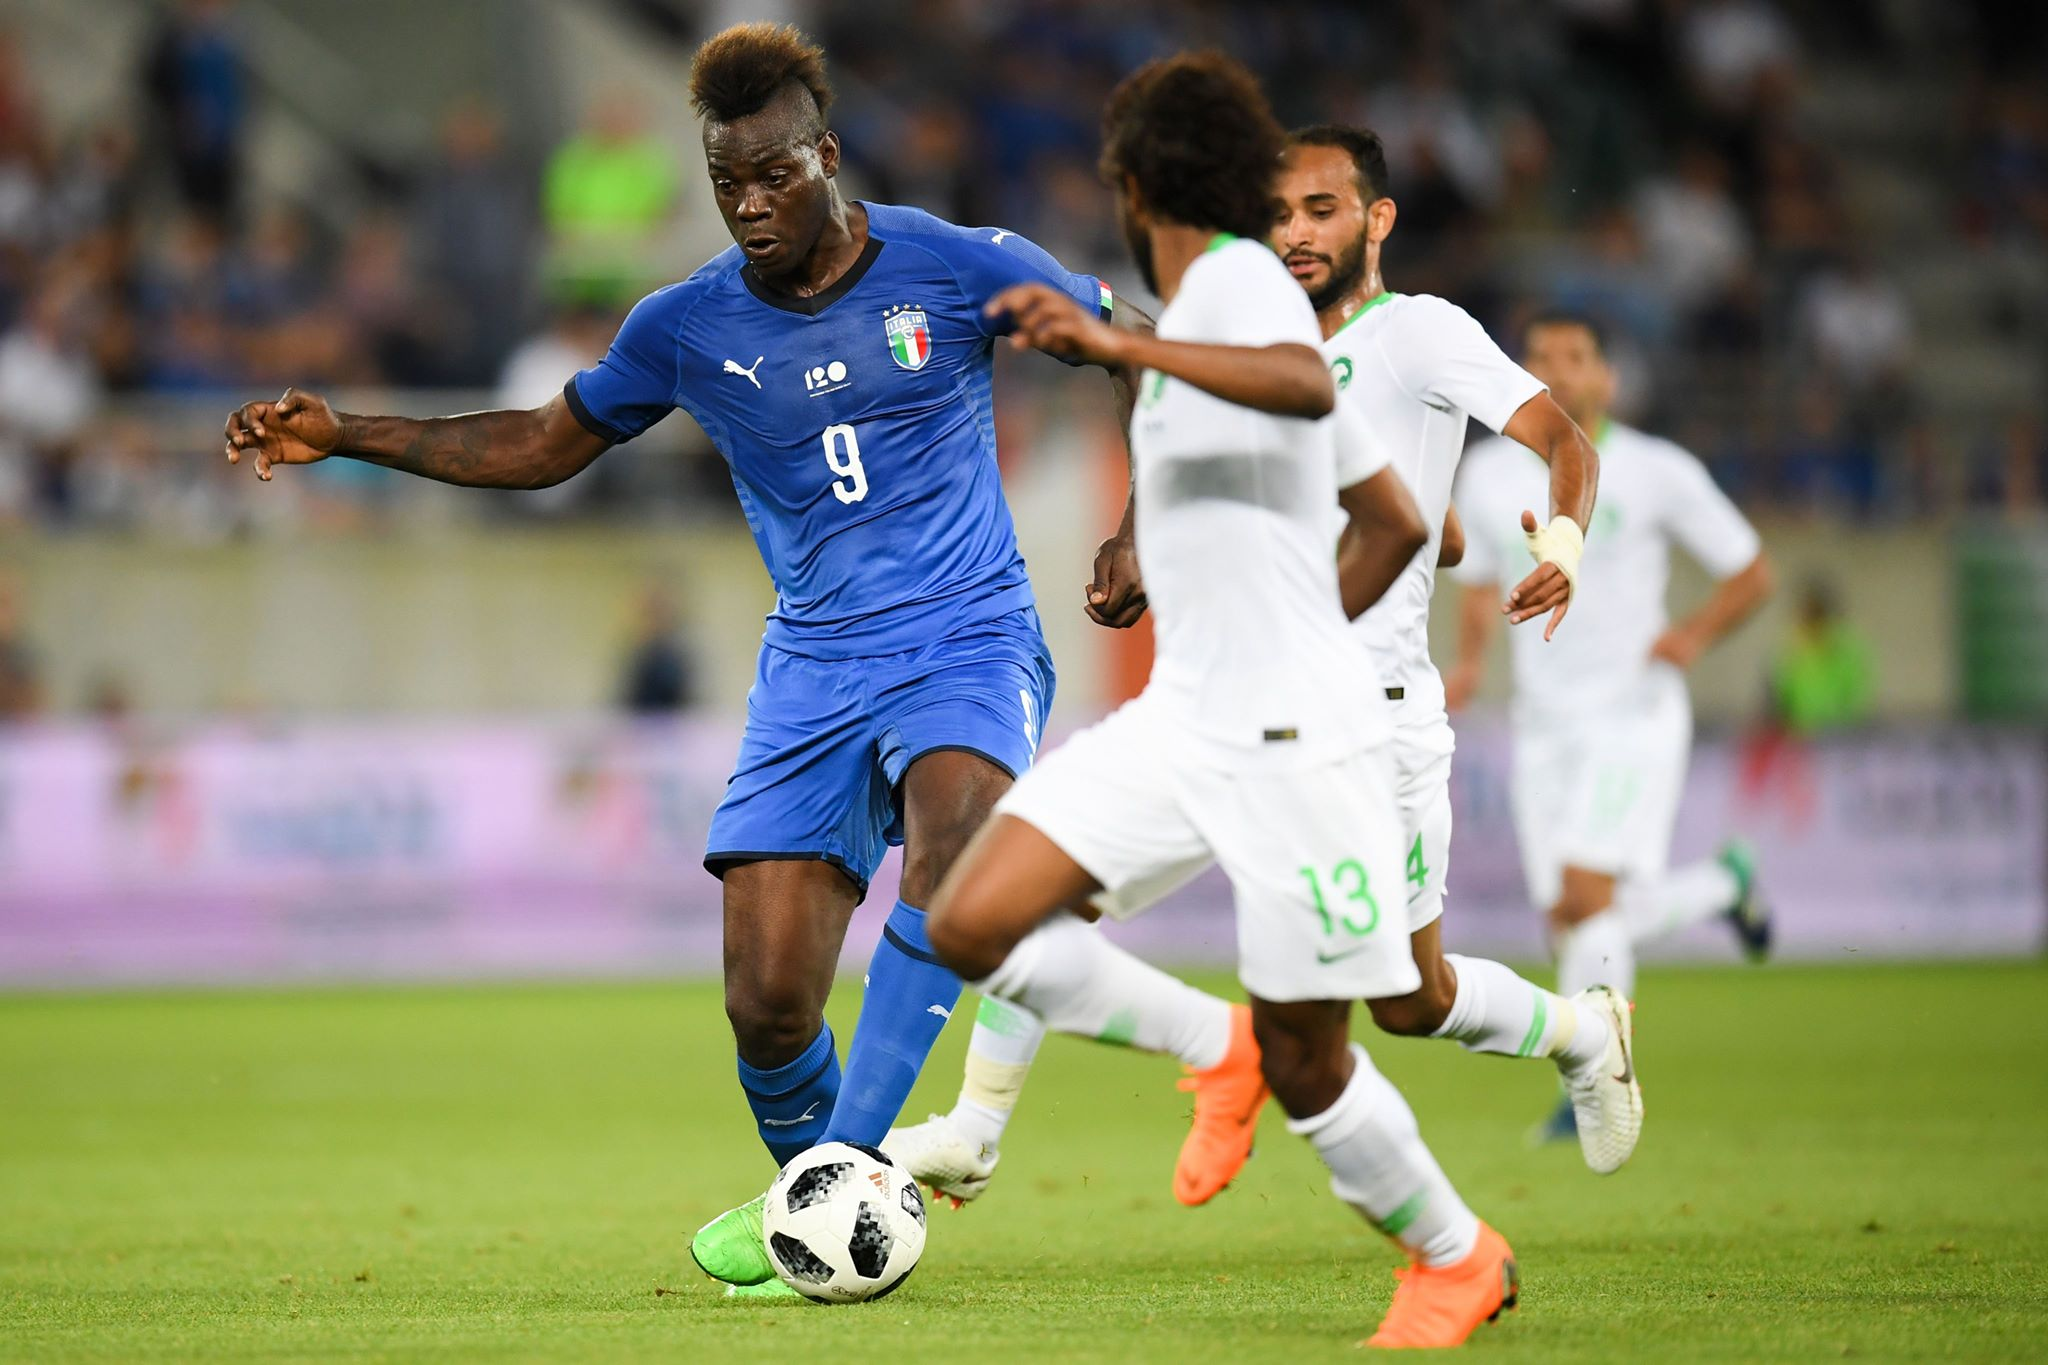 Balotelli scores impressive goal in return to Italy